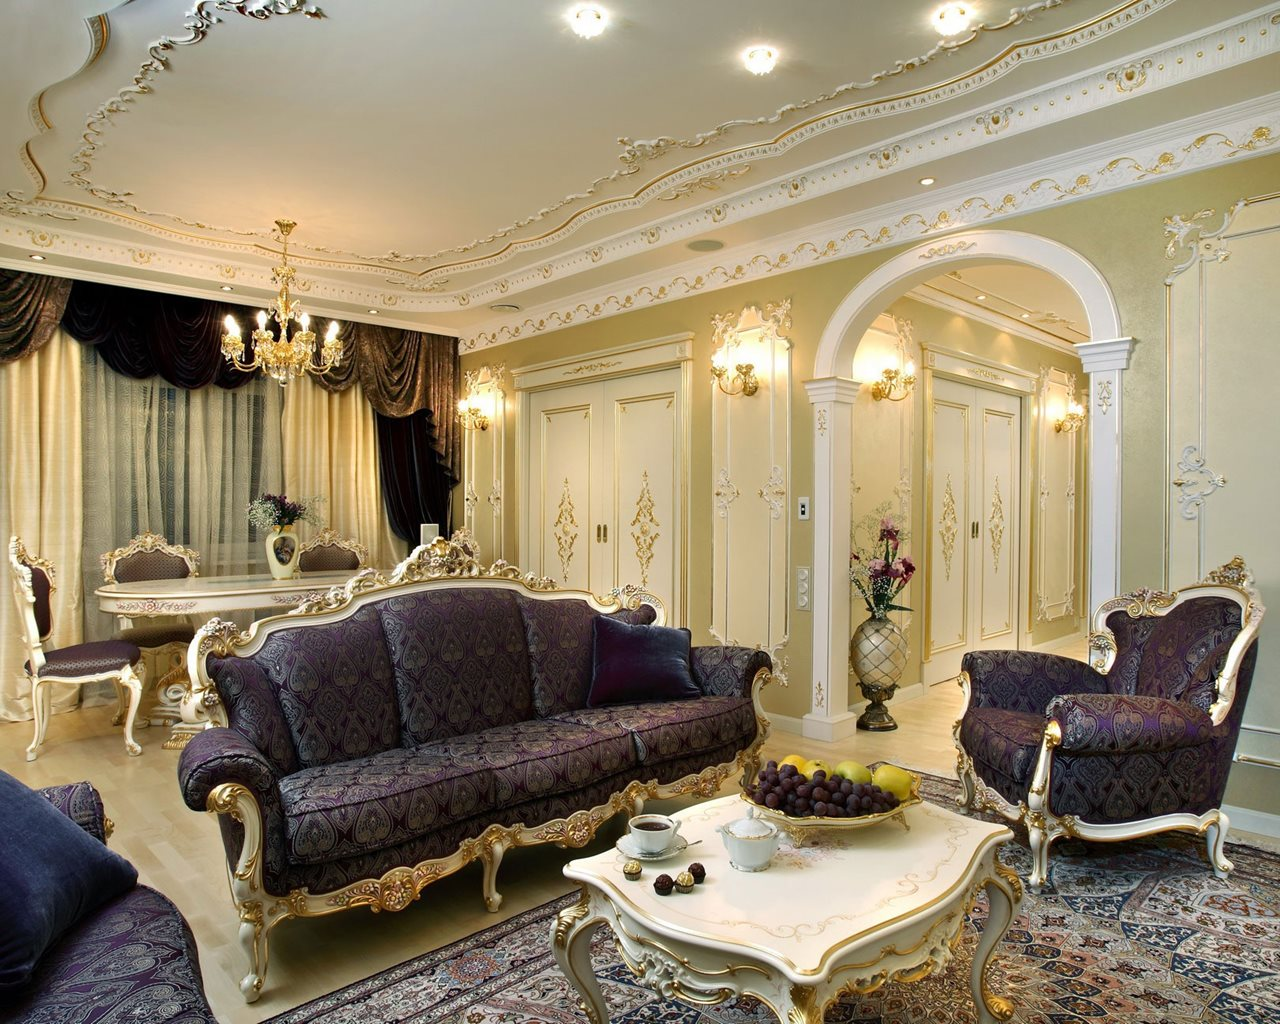 Baroque style interior design ideas for Sitting room interior